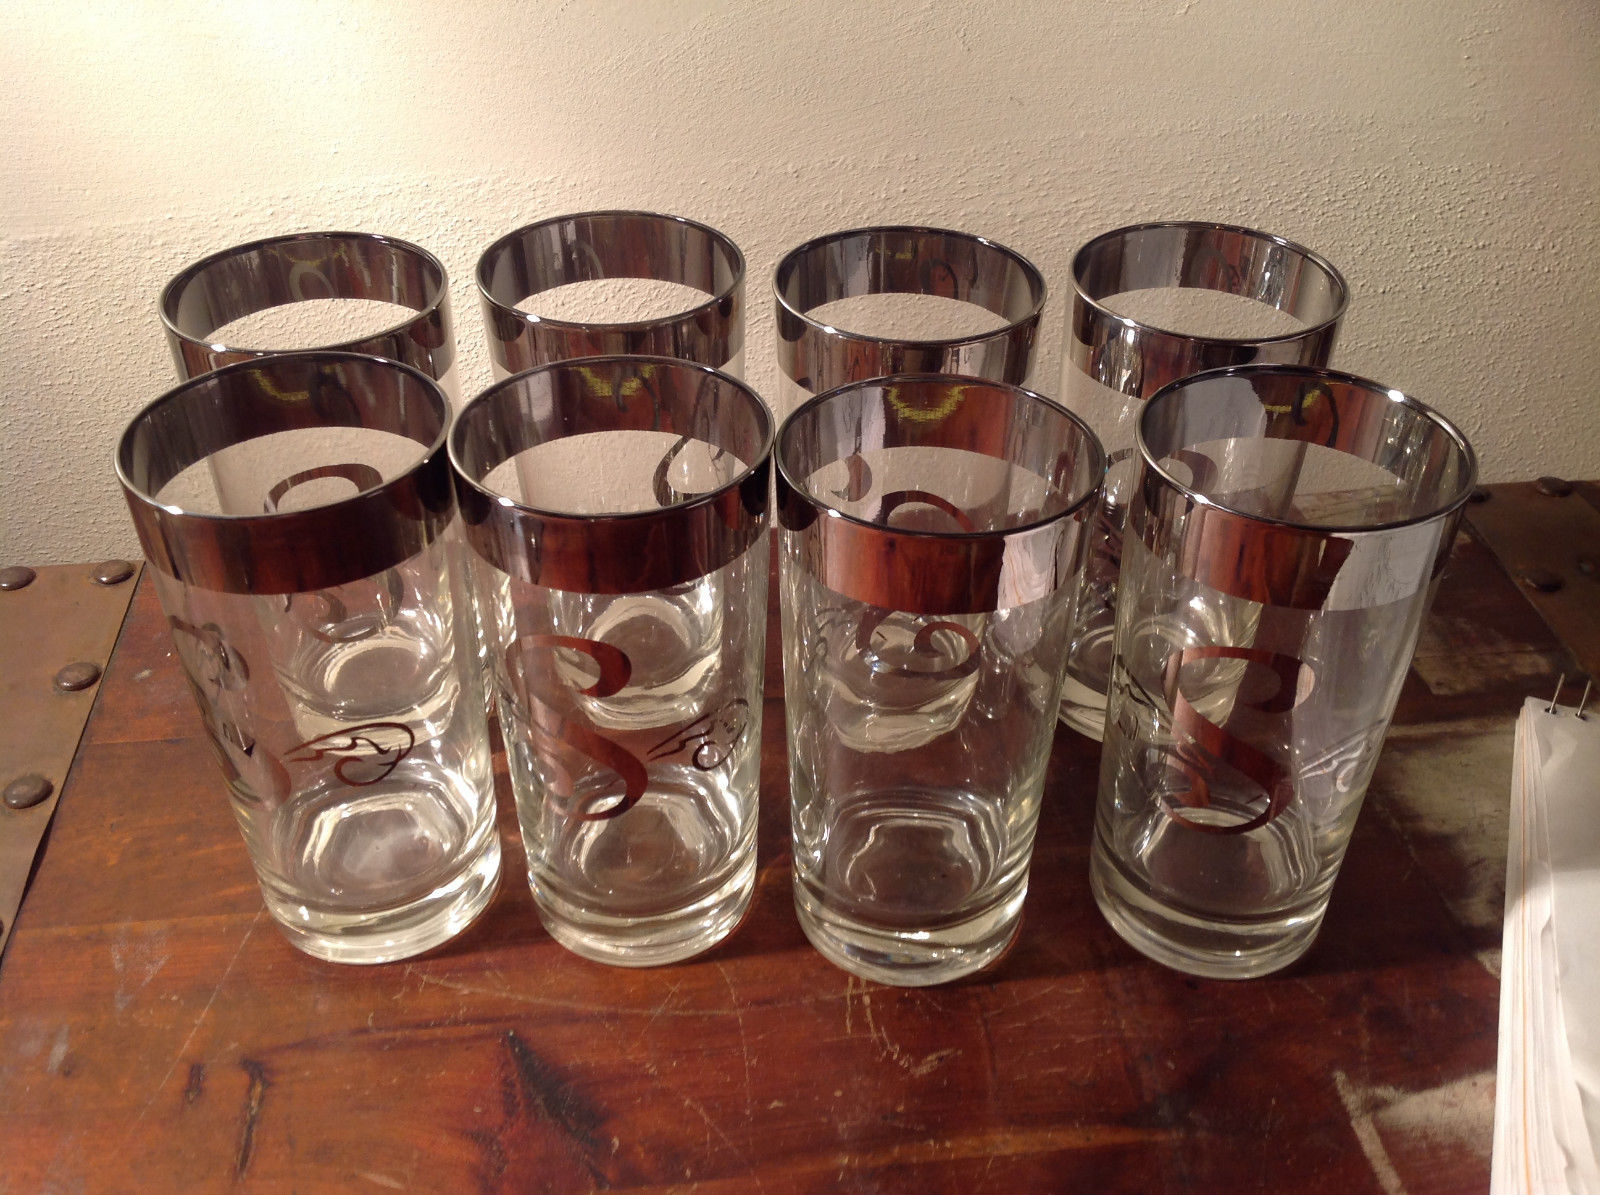 Eight Piece Set Silver Overlay Glasses Mid 1900s Large Letter S on each Glass